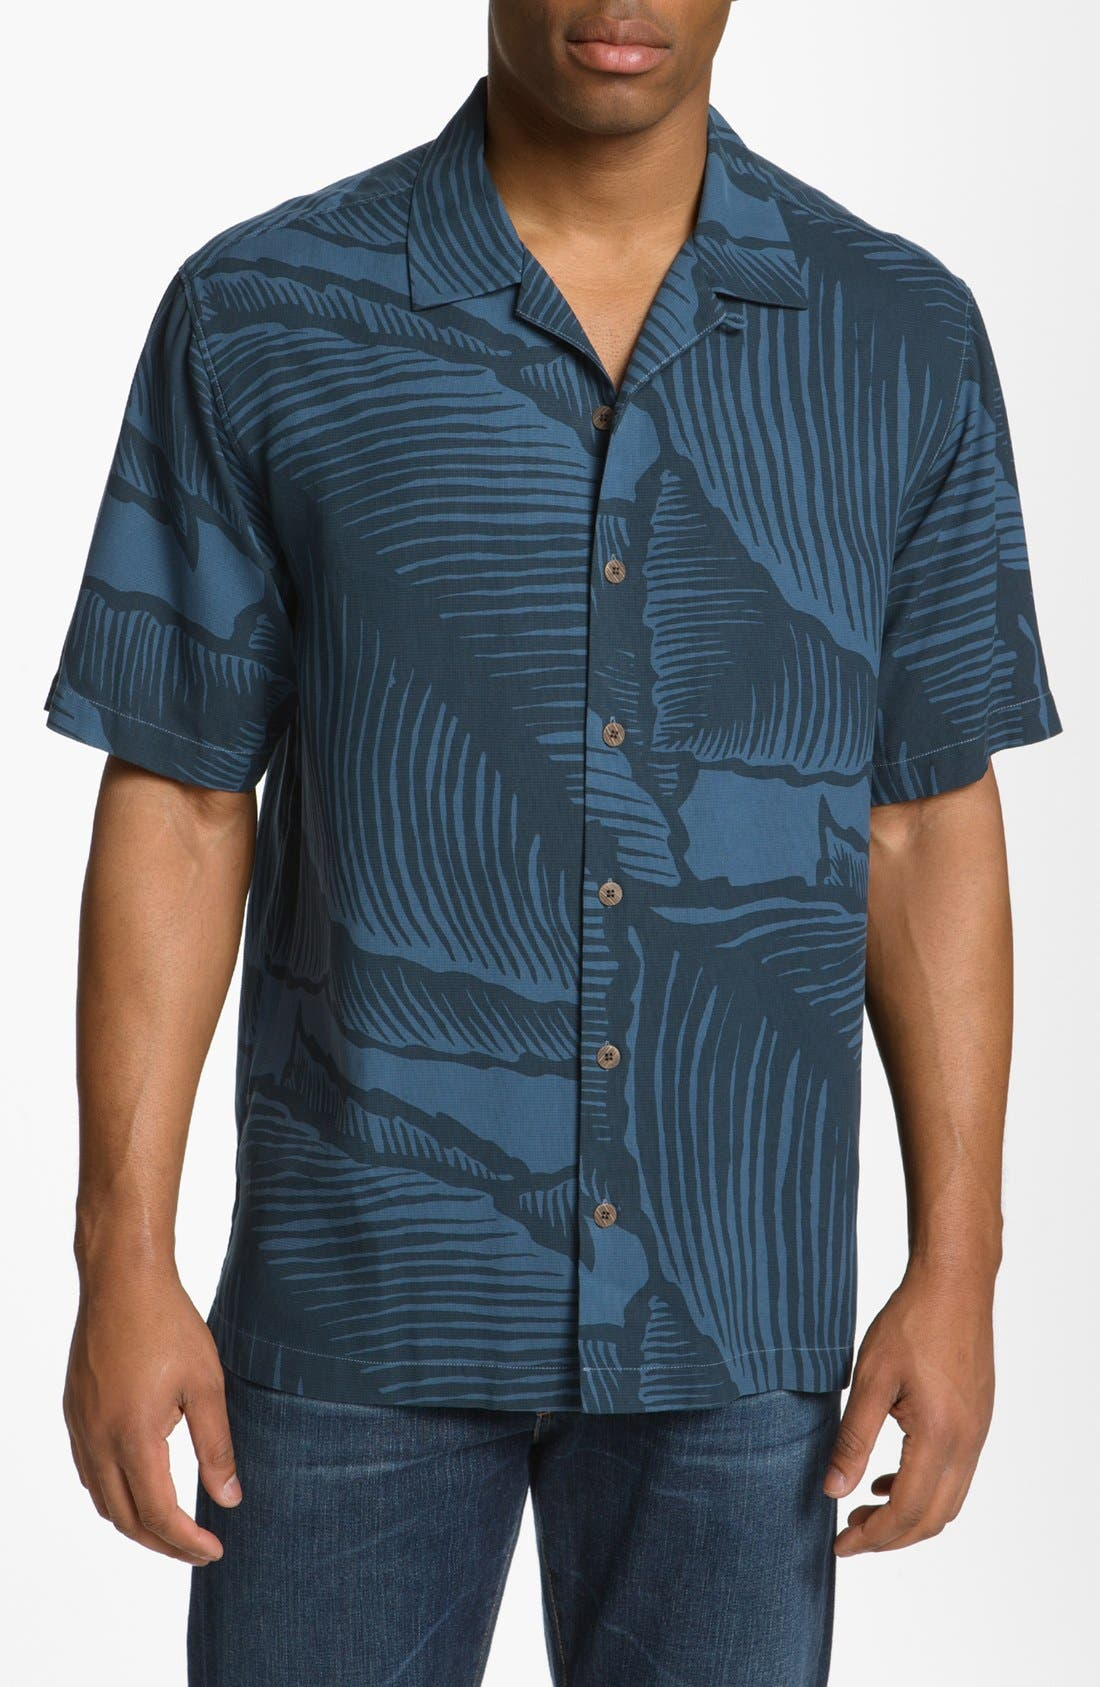 Alternate Image 1 Selected - Tommy Bahama 'Grand Frond' Campshirt (Big & Tall)